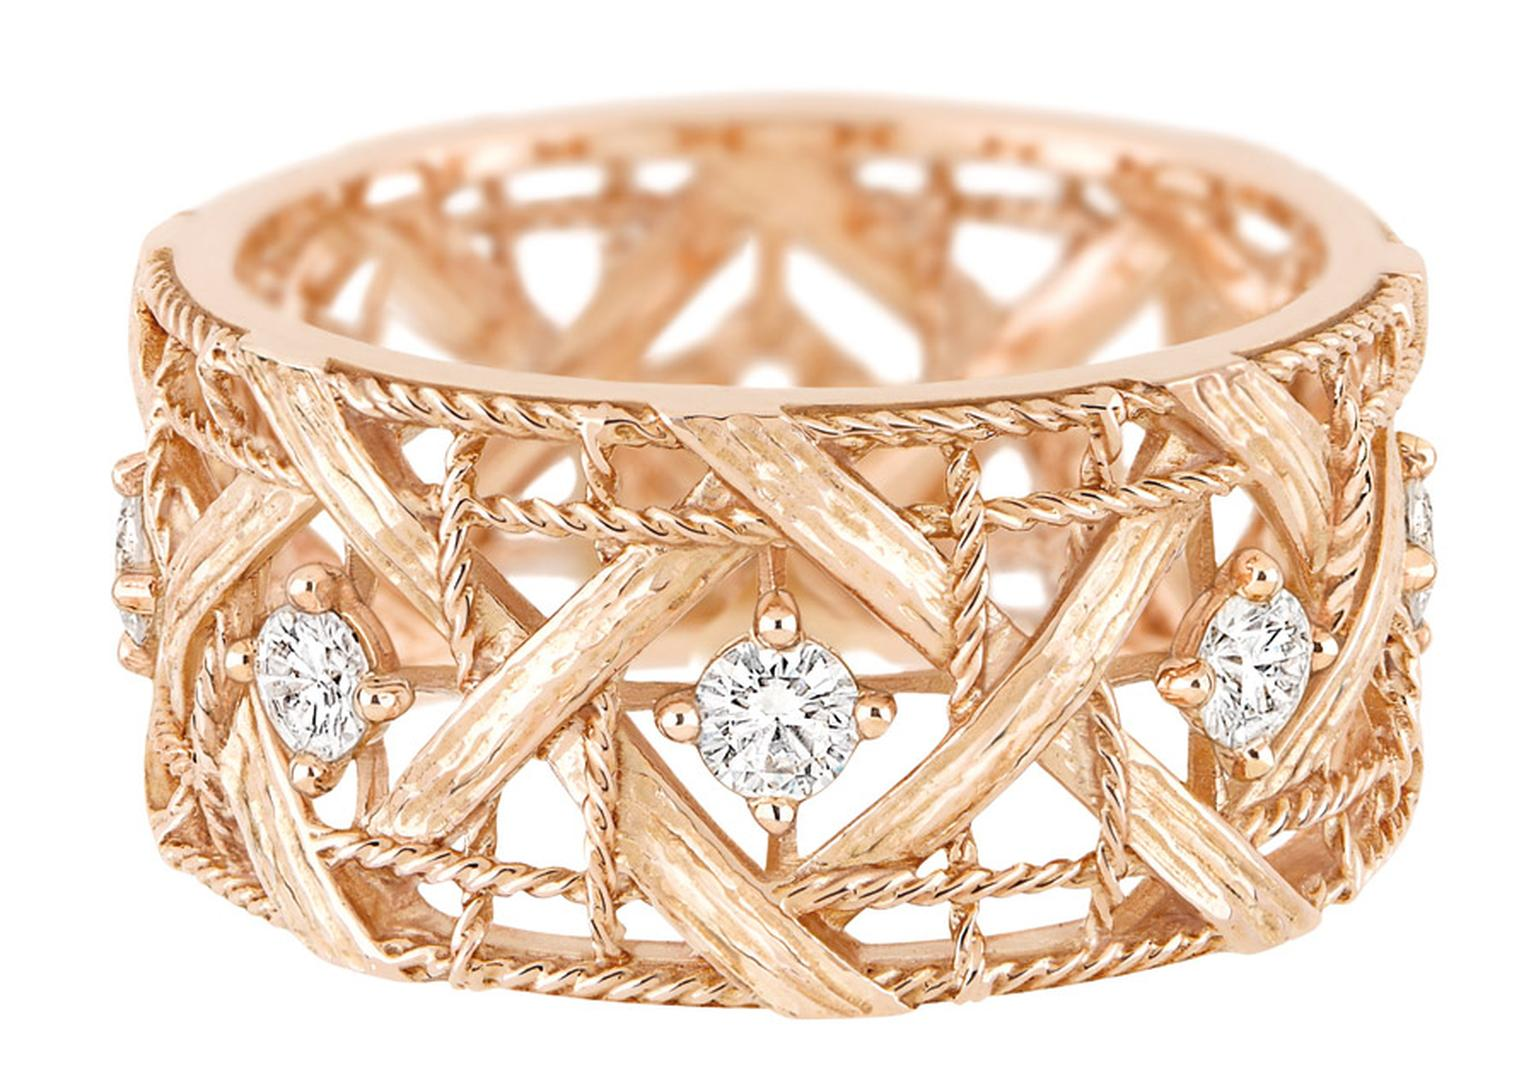 My-Dior-Ring-Pink-gold-and-diamonds.jpg